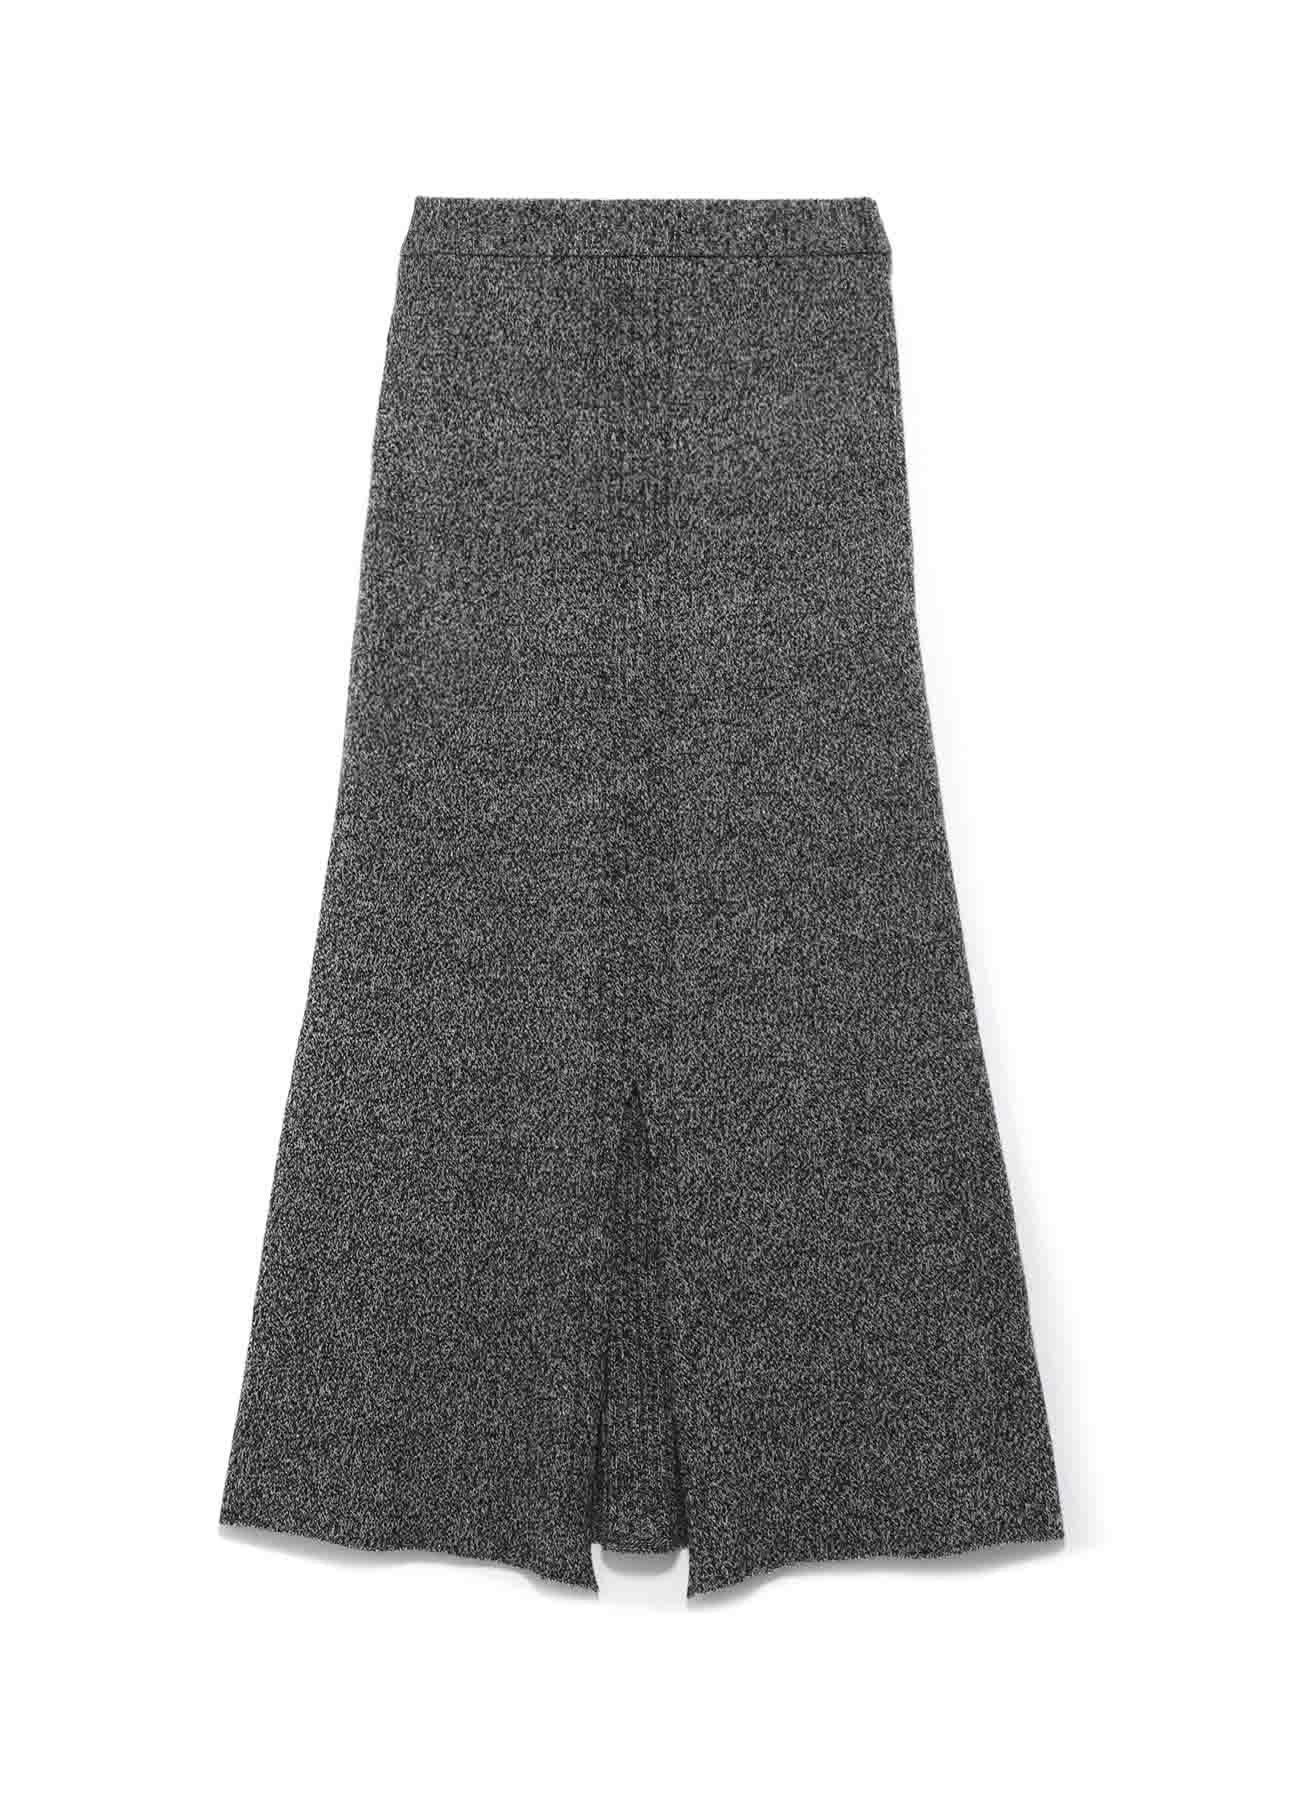 RISMATbyY's WASHABLE WOOL CENTER RIB FLARE SKIRT